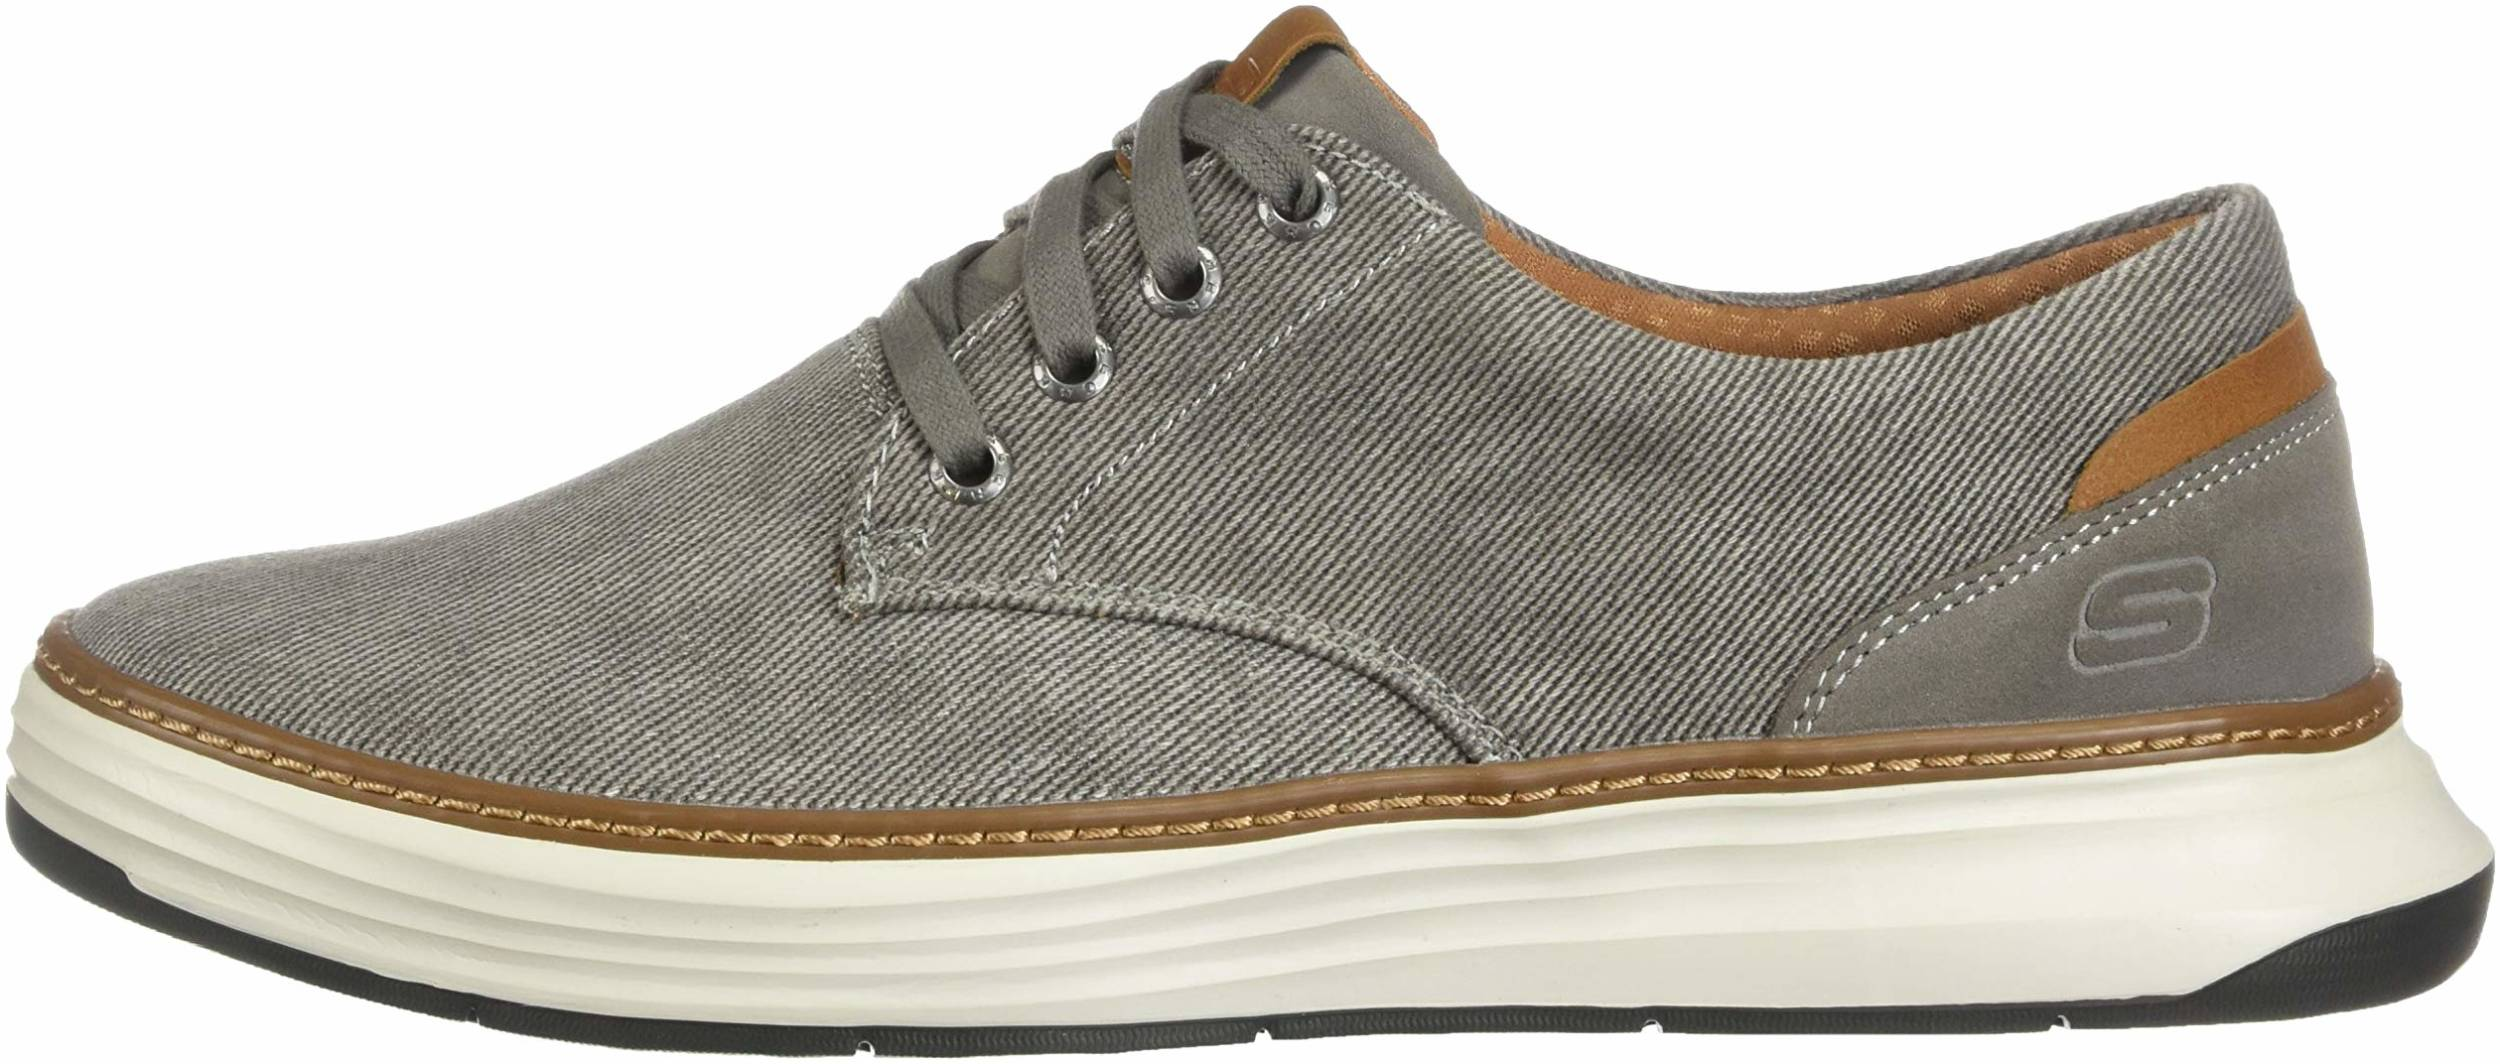 Only $35 + Review of Skechers Moreno